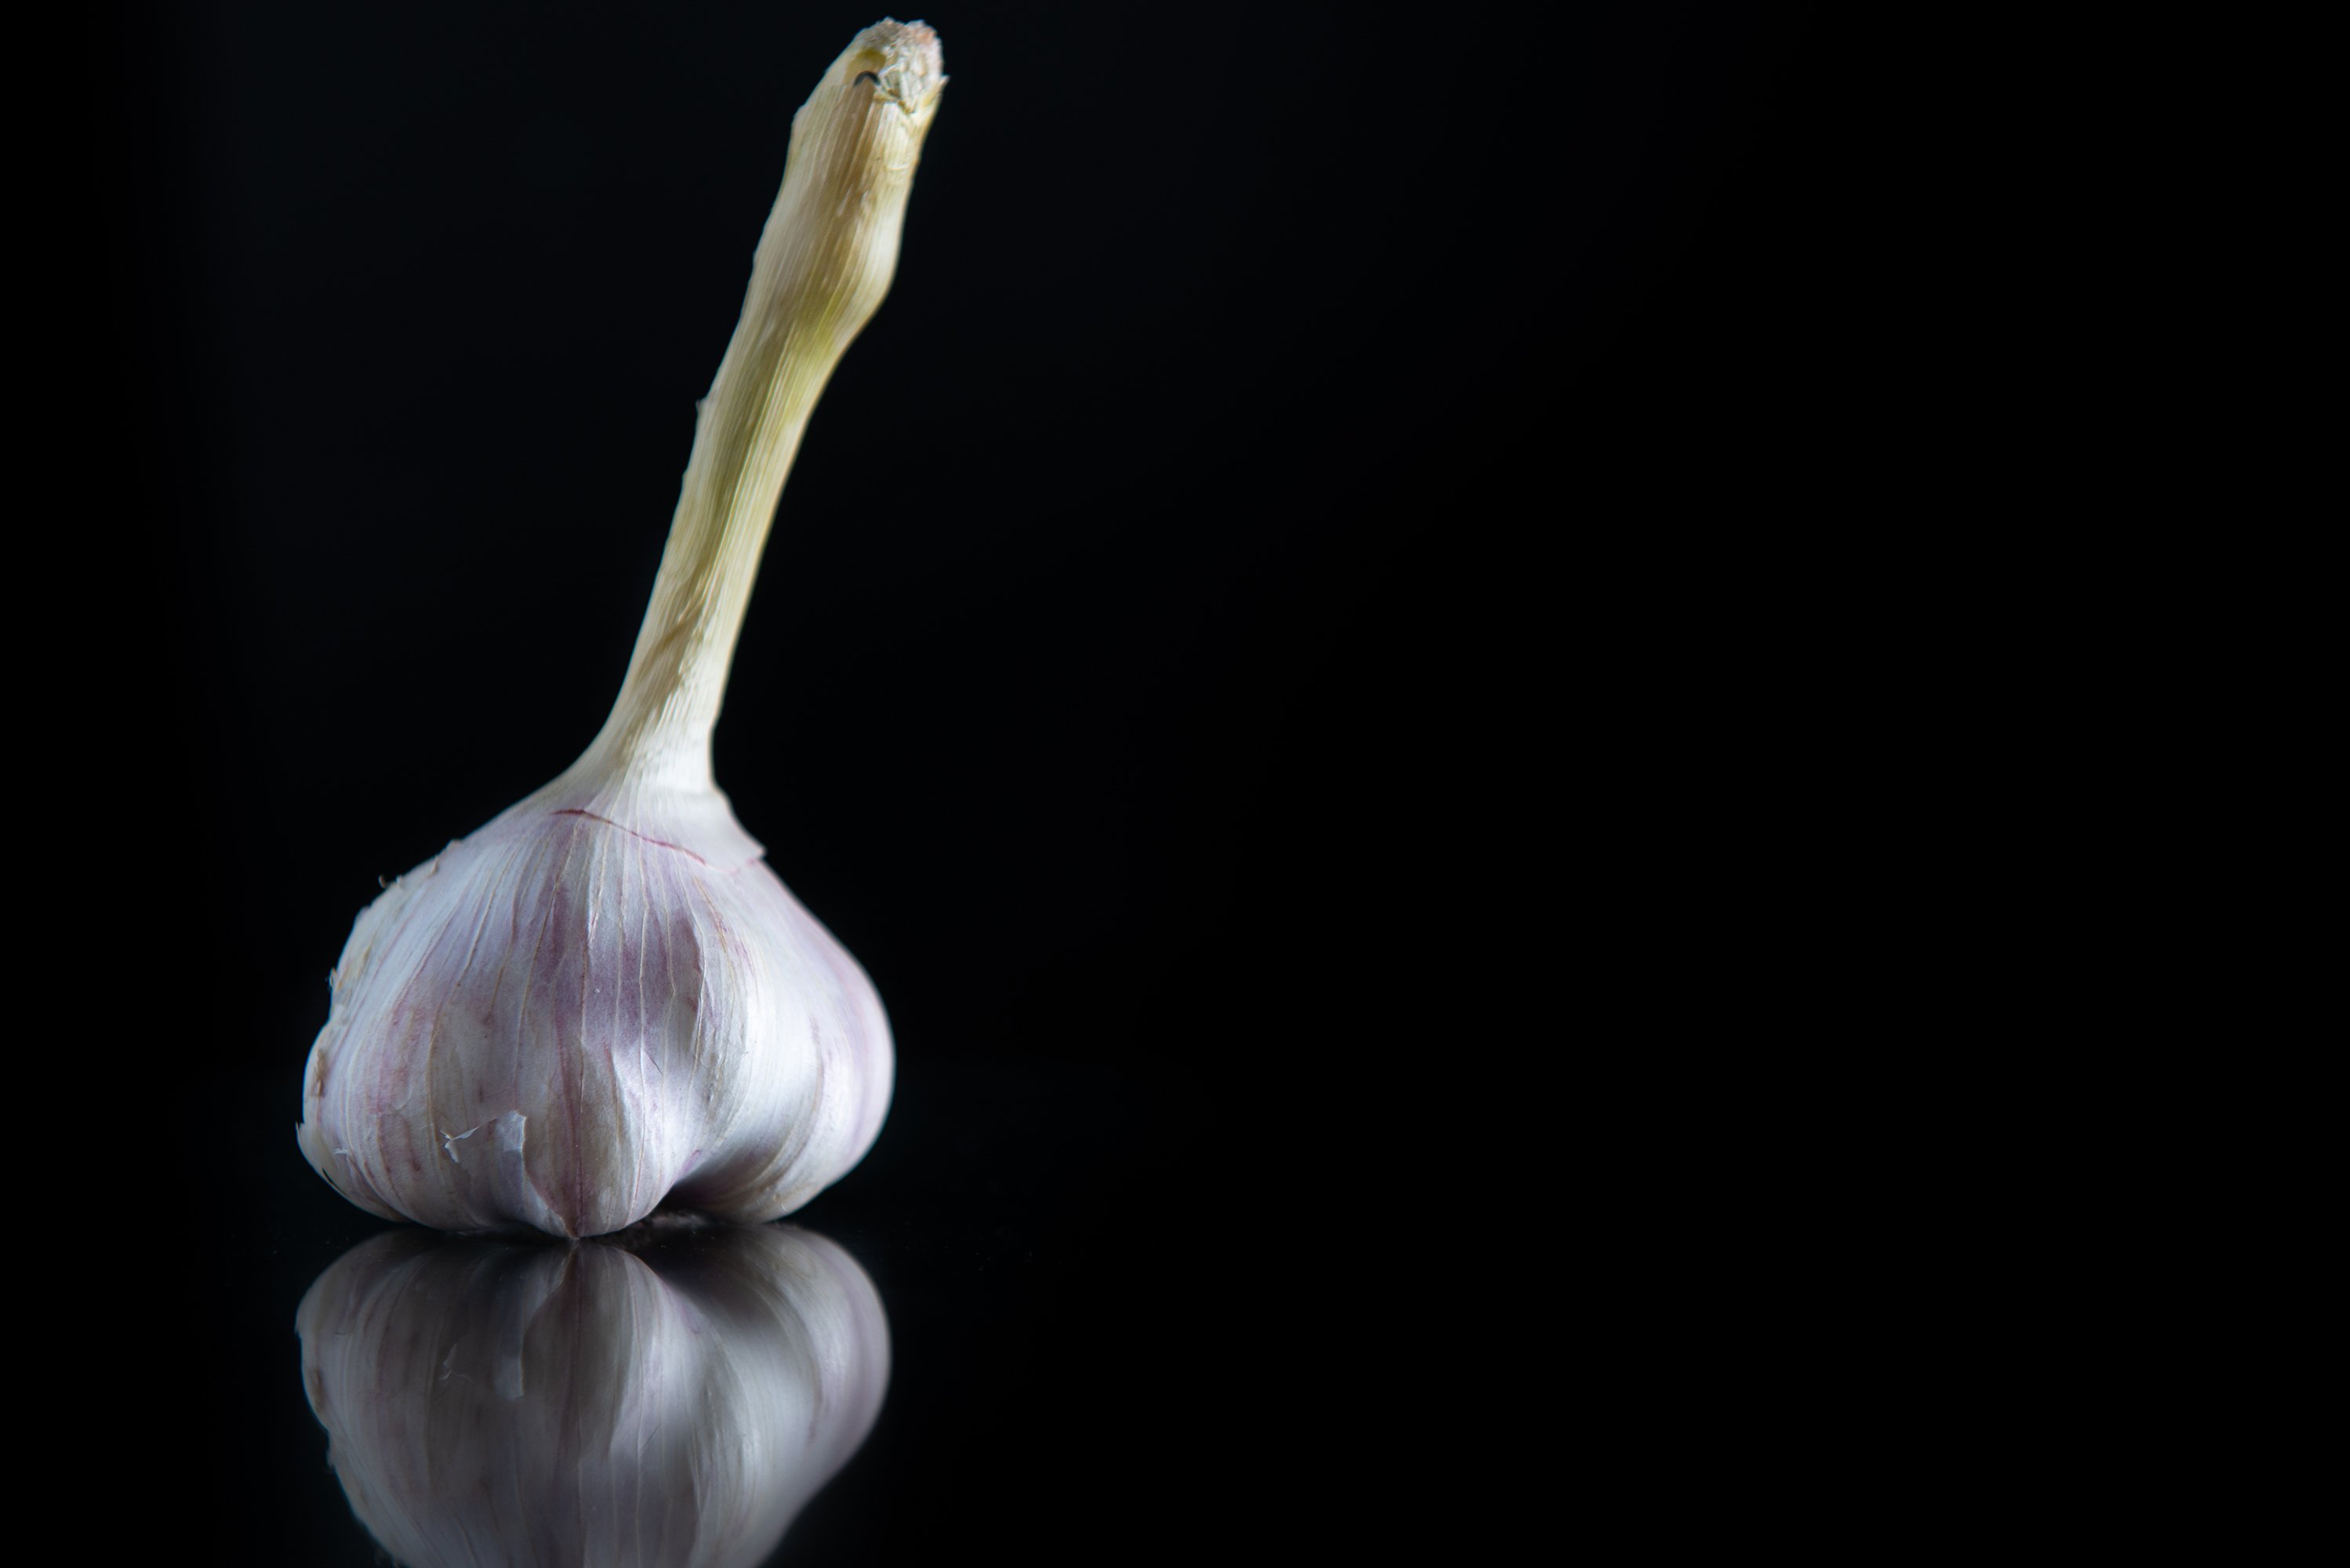 garlic with a stem on a black isolated background example image 1